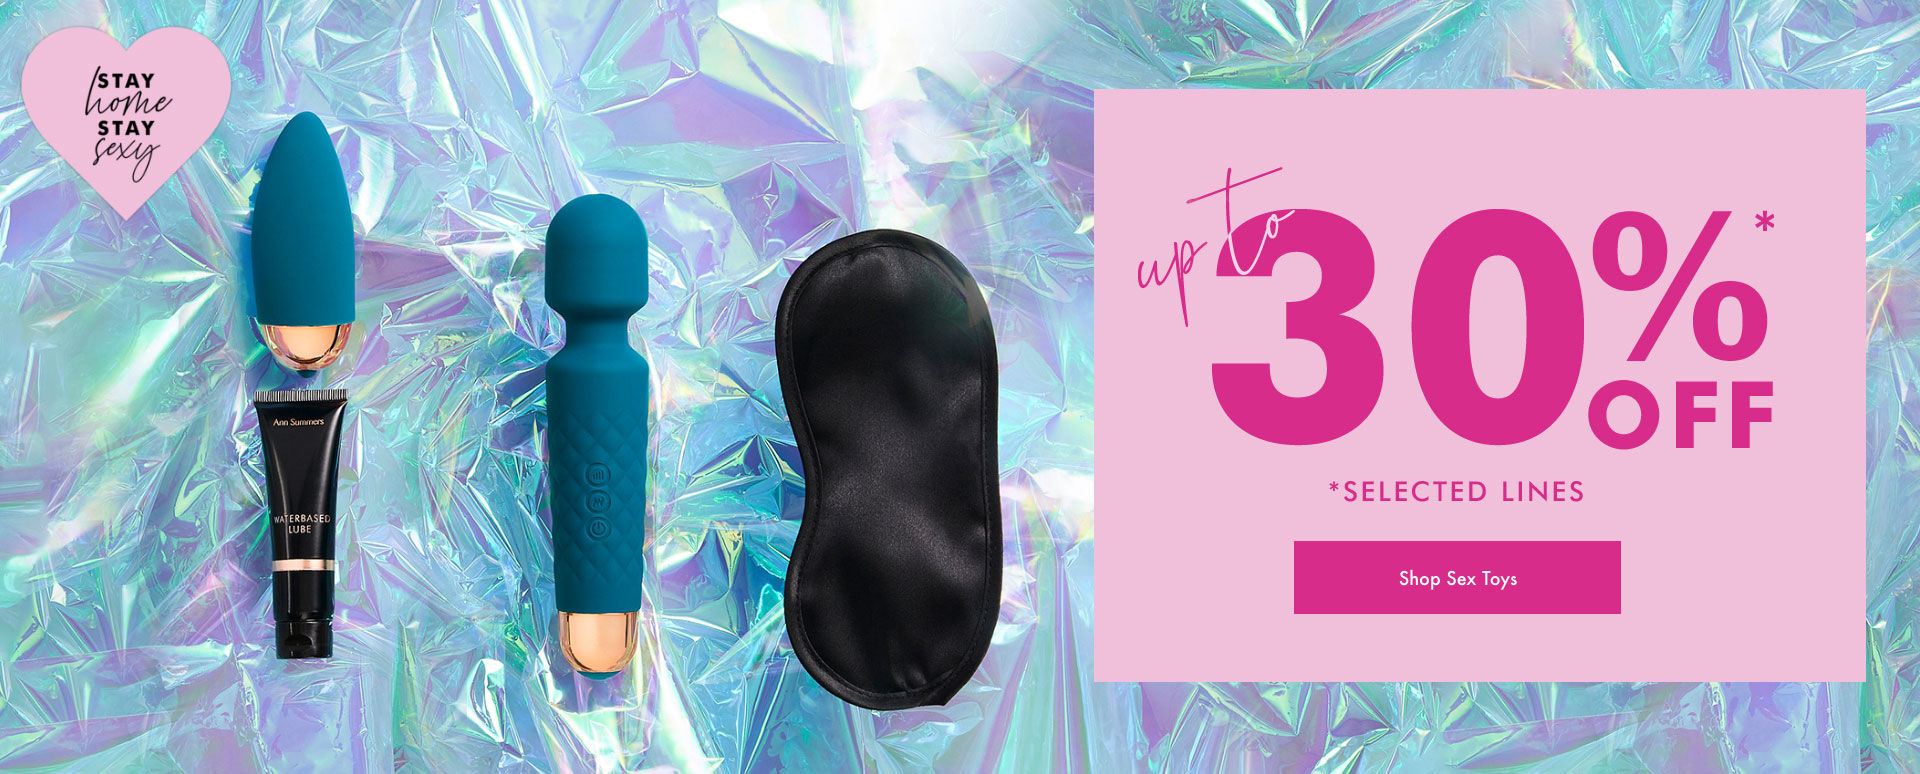 Up to 30% off selected lines - Shop Sex Toys